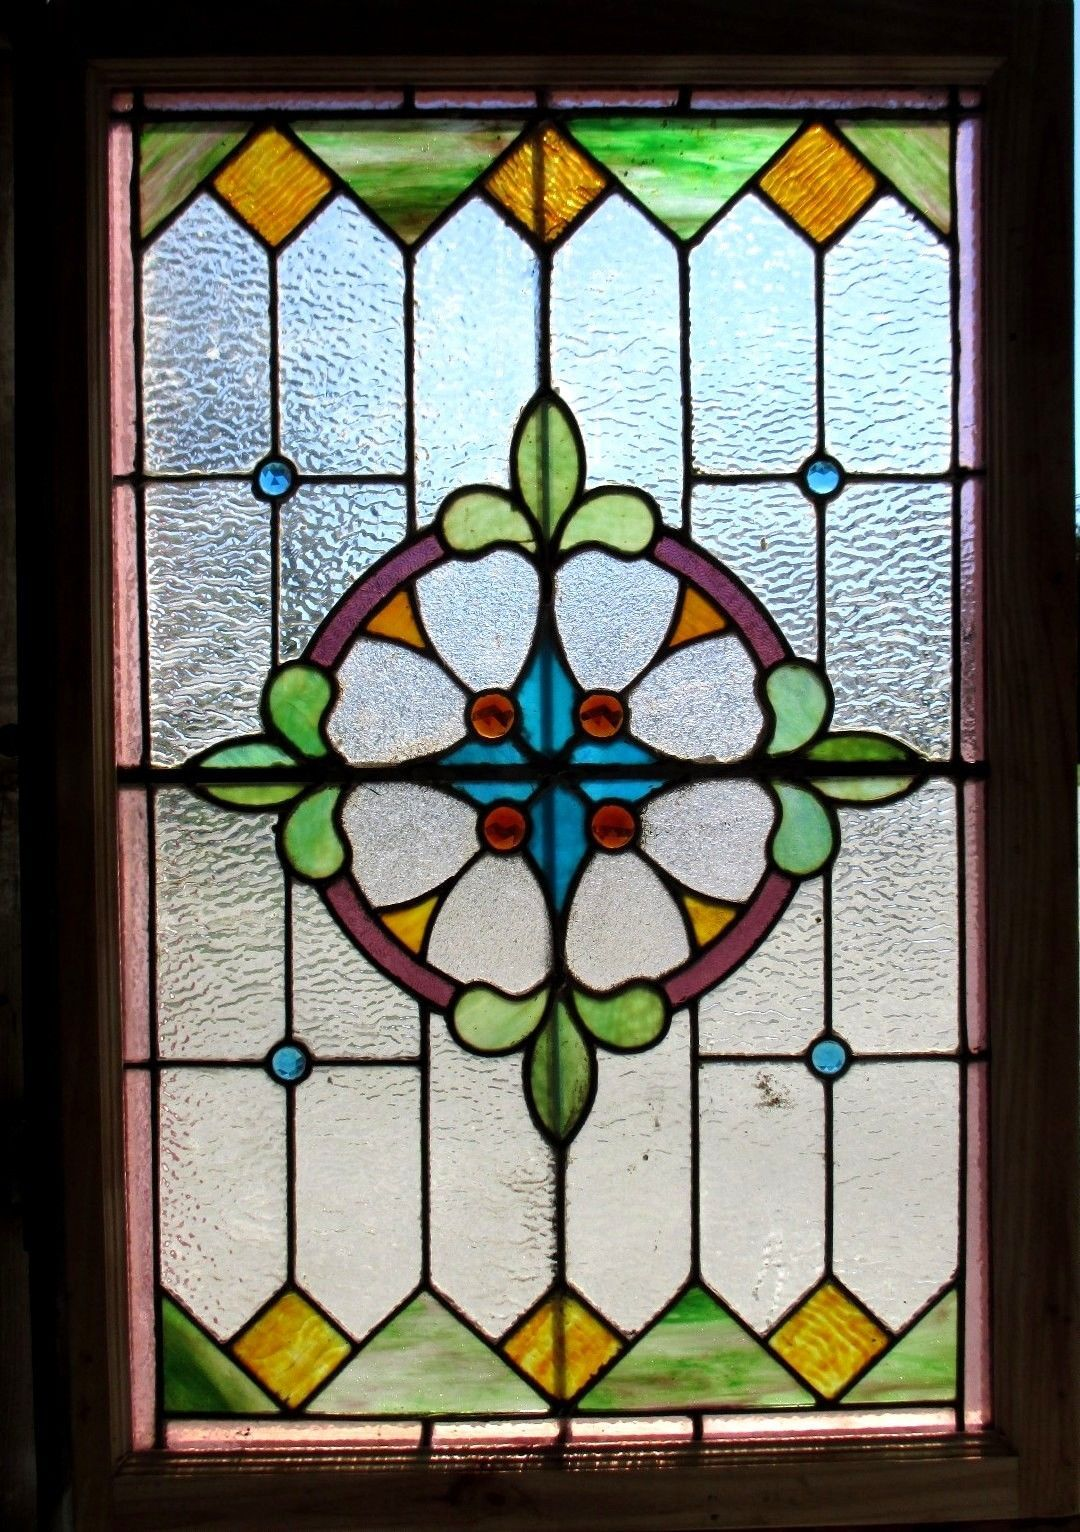 Antique american stained glass window 27 5 x 40 5 for American window design